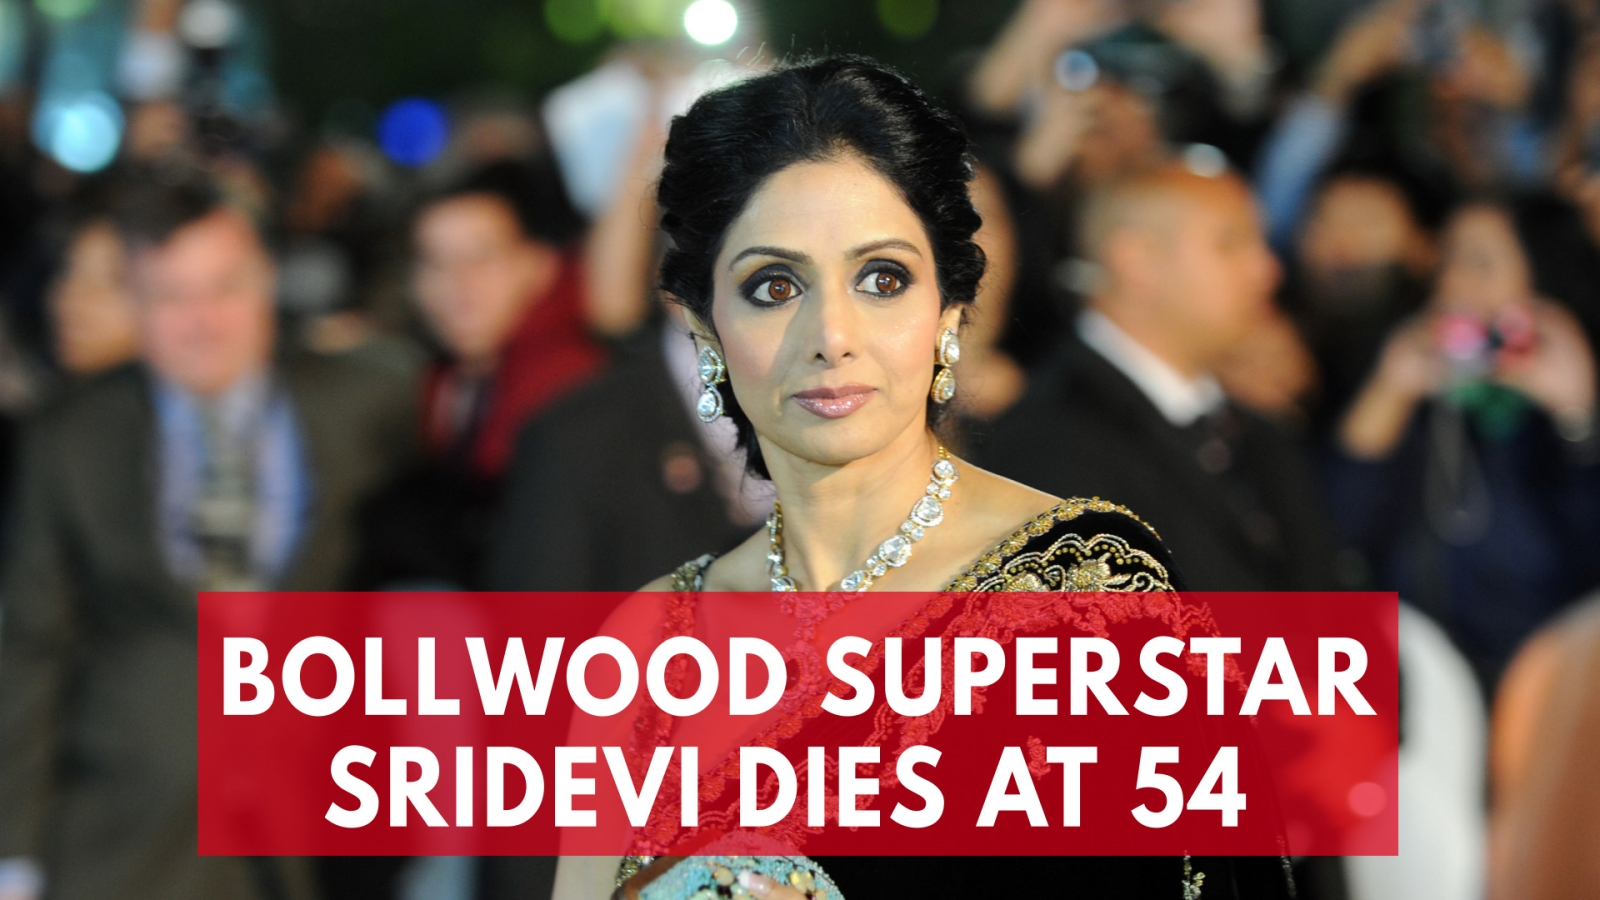 bollowoods-first-female-superstar-sridevi-kapoor-dies-at-54